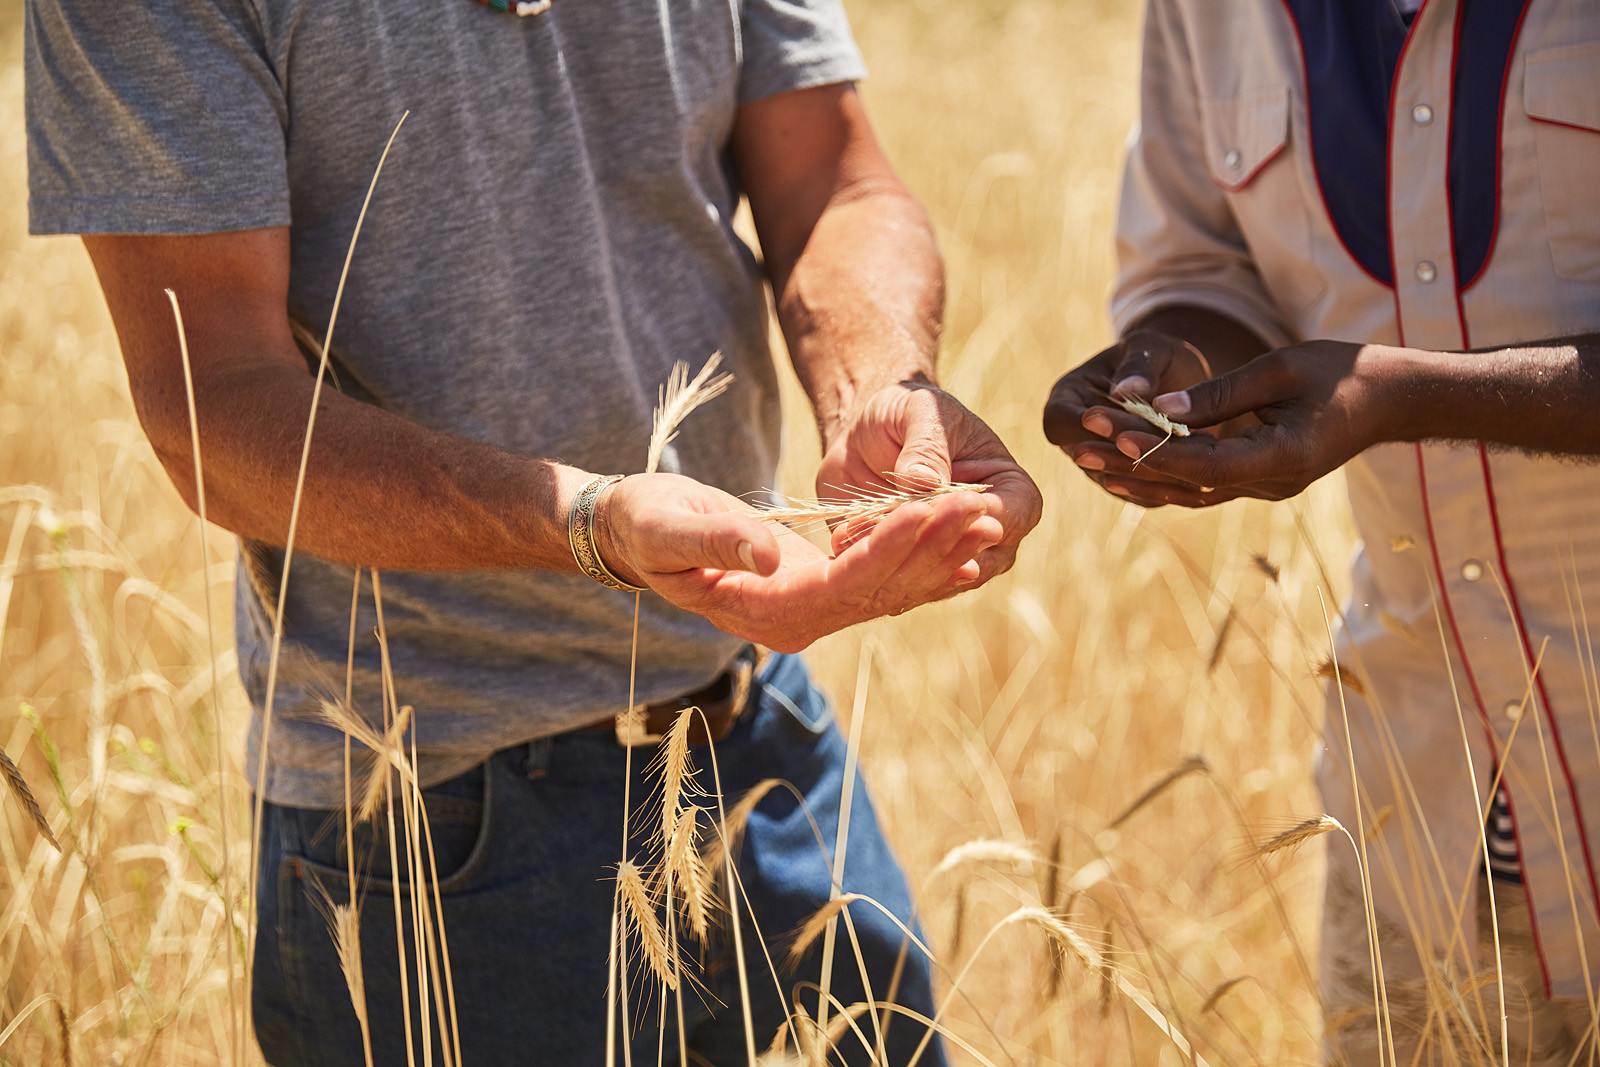 WHEAT IN HANDS_FOOD INTERRUPTED_GRAIN_PA